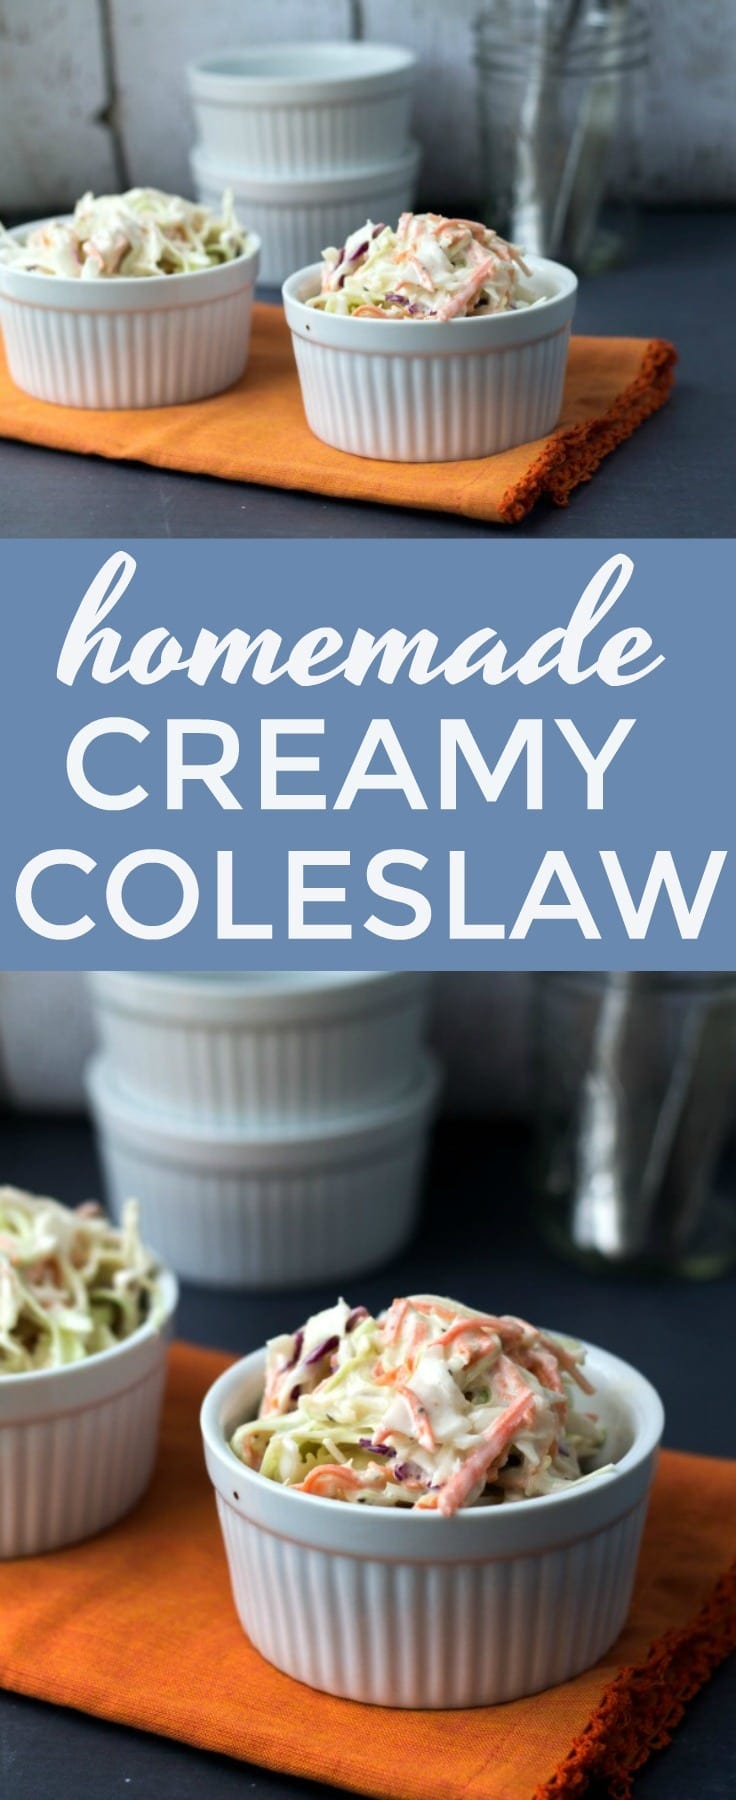 Homemade Creamy Coleslaw. This BOLD flavorful #coleslaw is my favorite #sidedish for #bbq dinners!